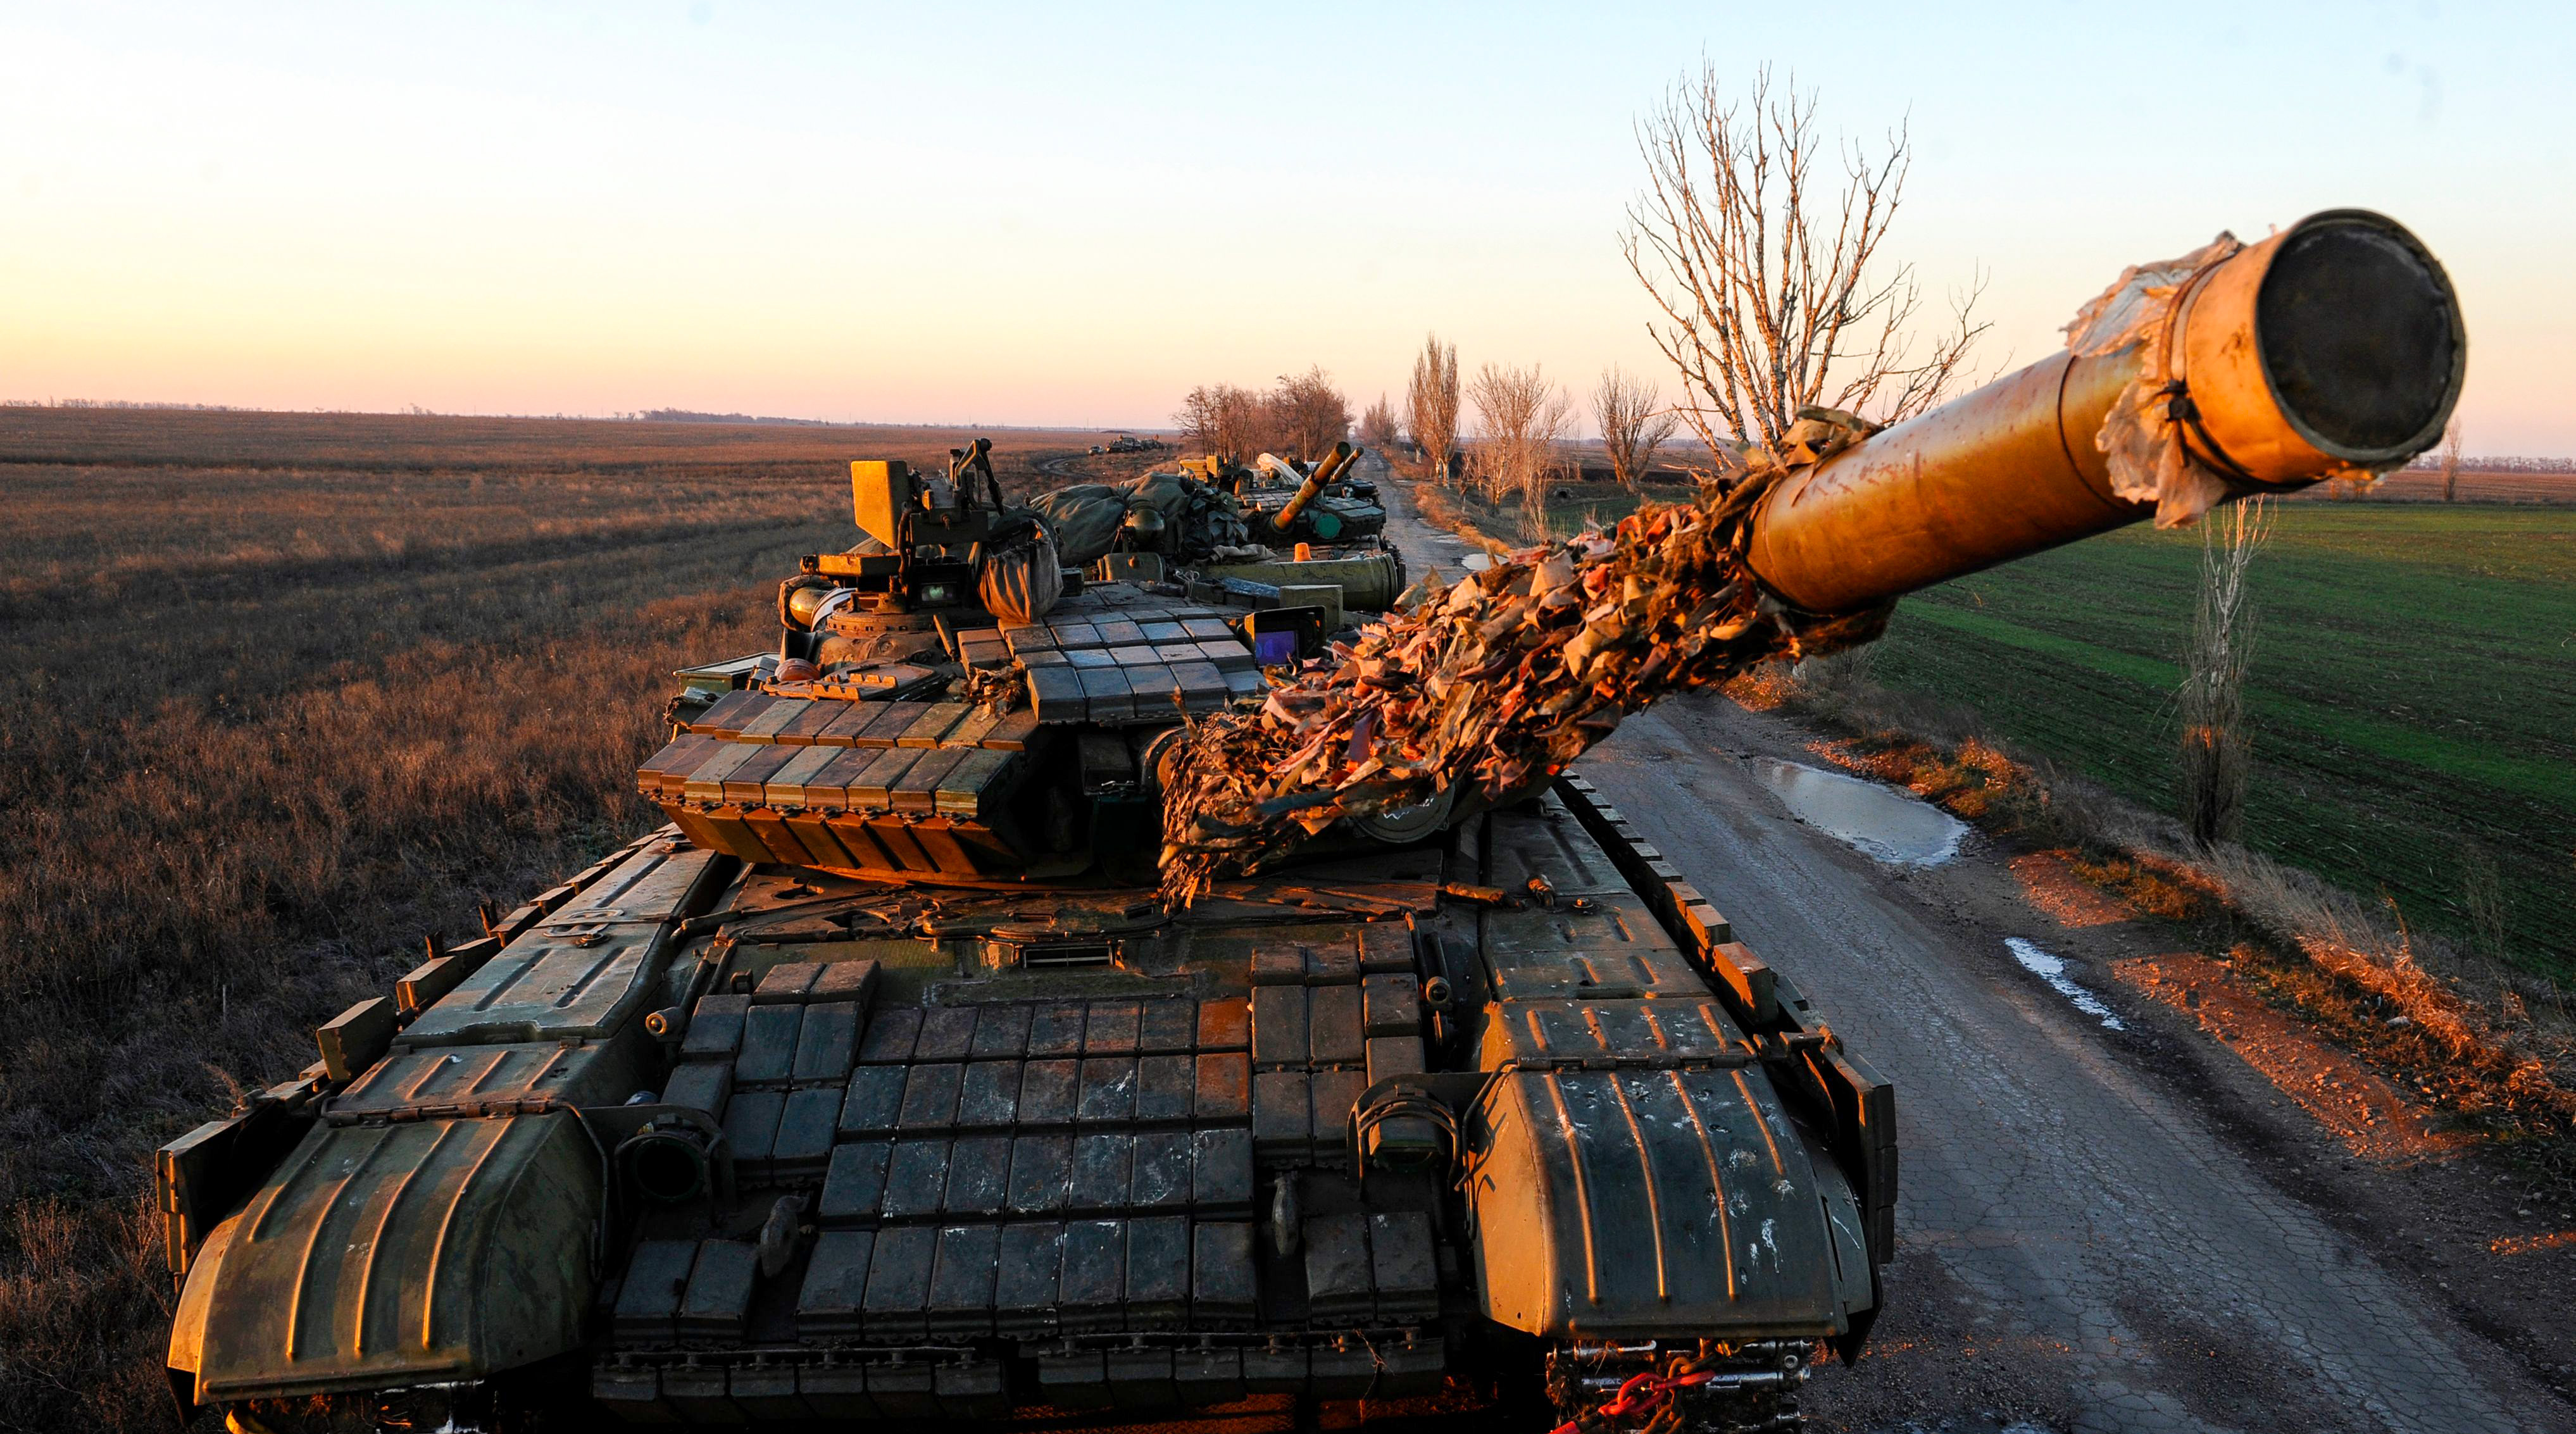 A picture taken near Urzuf village not far from the city of Mariupol, eastern Ukraine on November 29, 2018 shows Ukrainian tanks during military drills. - Ukraine's president imposed martial law in border regions on November 28, 2018 for 30 days in 10 regions bordering Russia, the Black Sea and the Azov Sea, after Russian forces seized three of Kiev's ships off the coast of Crimea on November 25, sparking the most dangerous crisis between the ex-Soviet neighbours in years. (PSEGA VOLSKII/AFP/Getty Images)